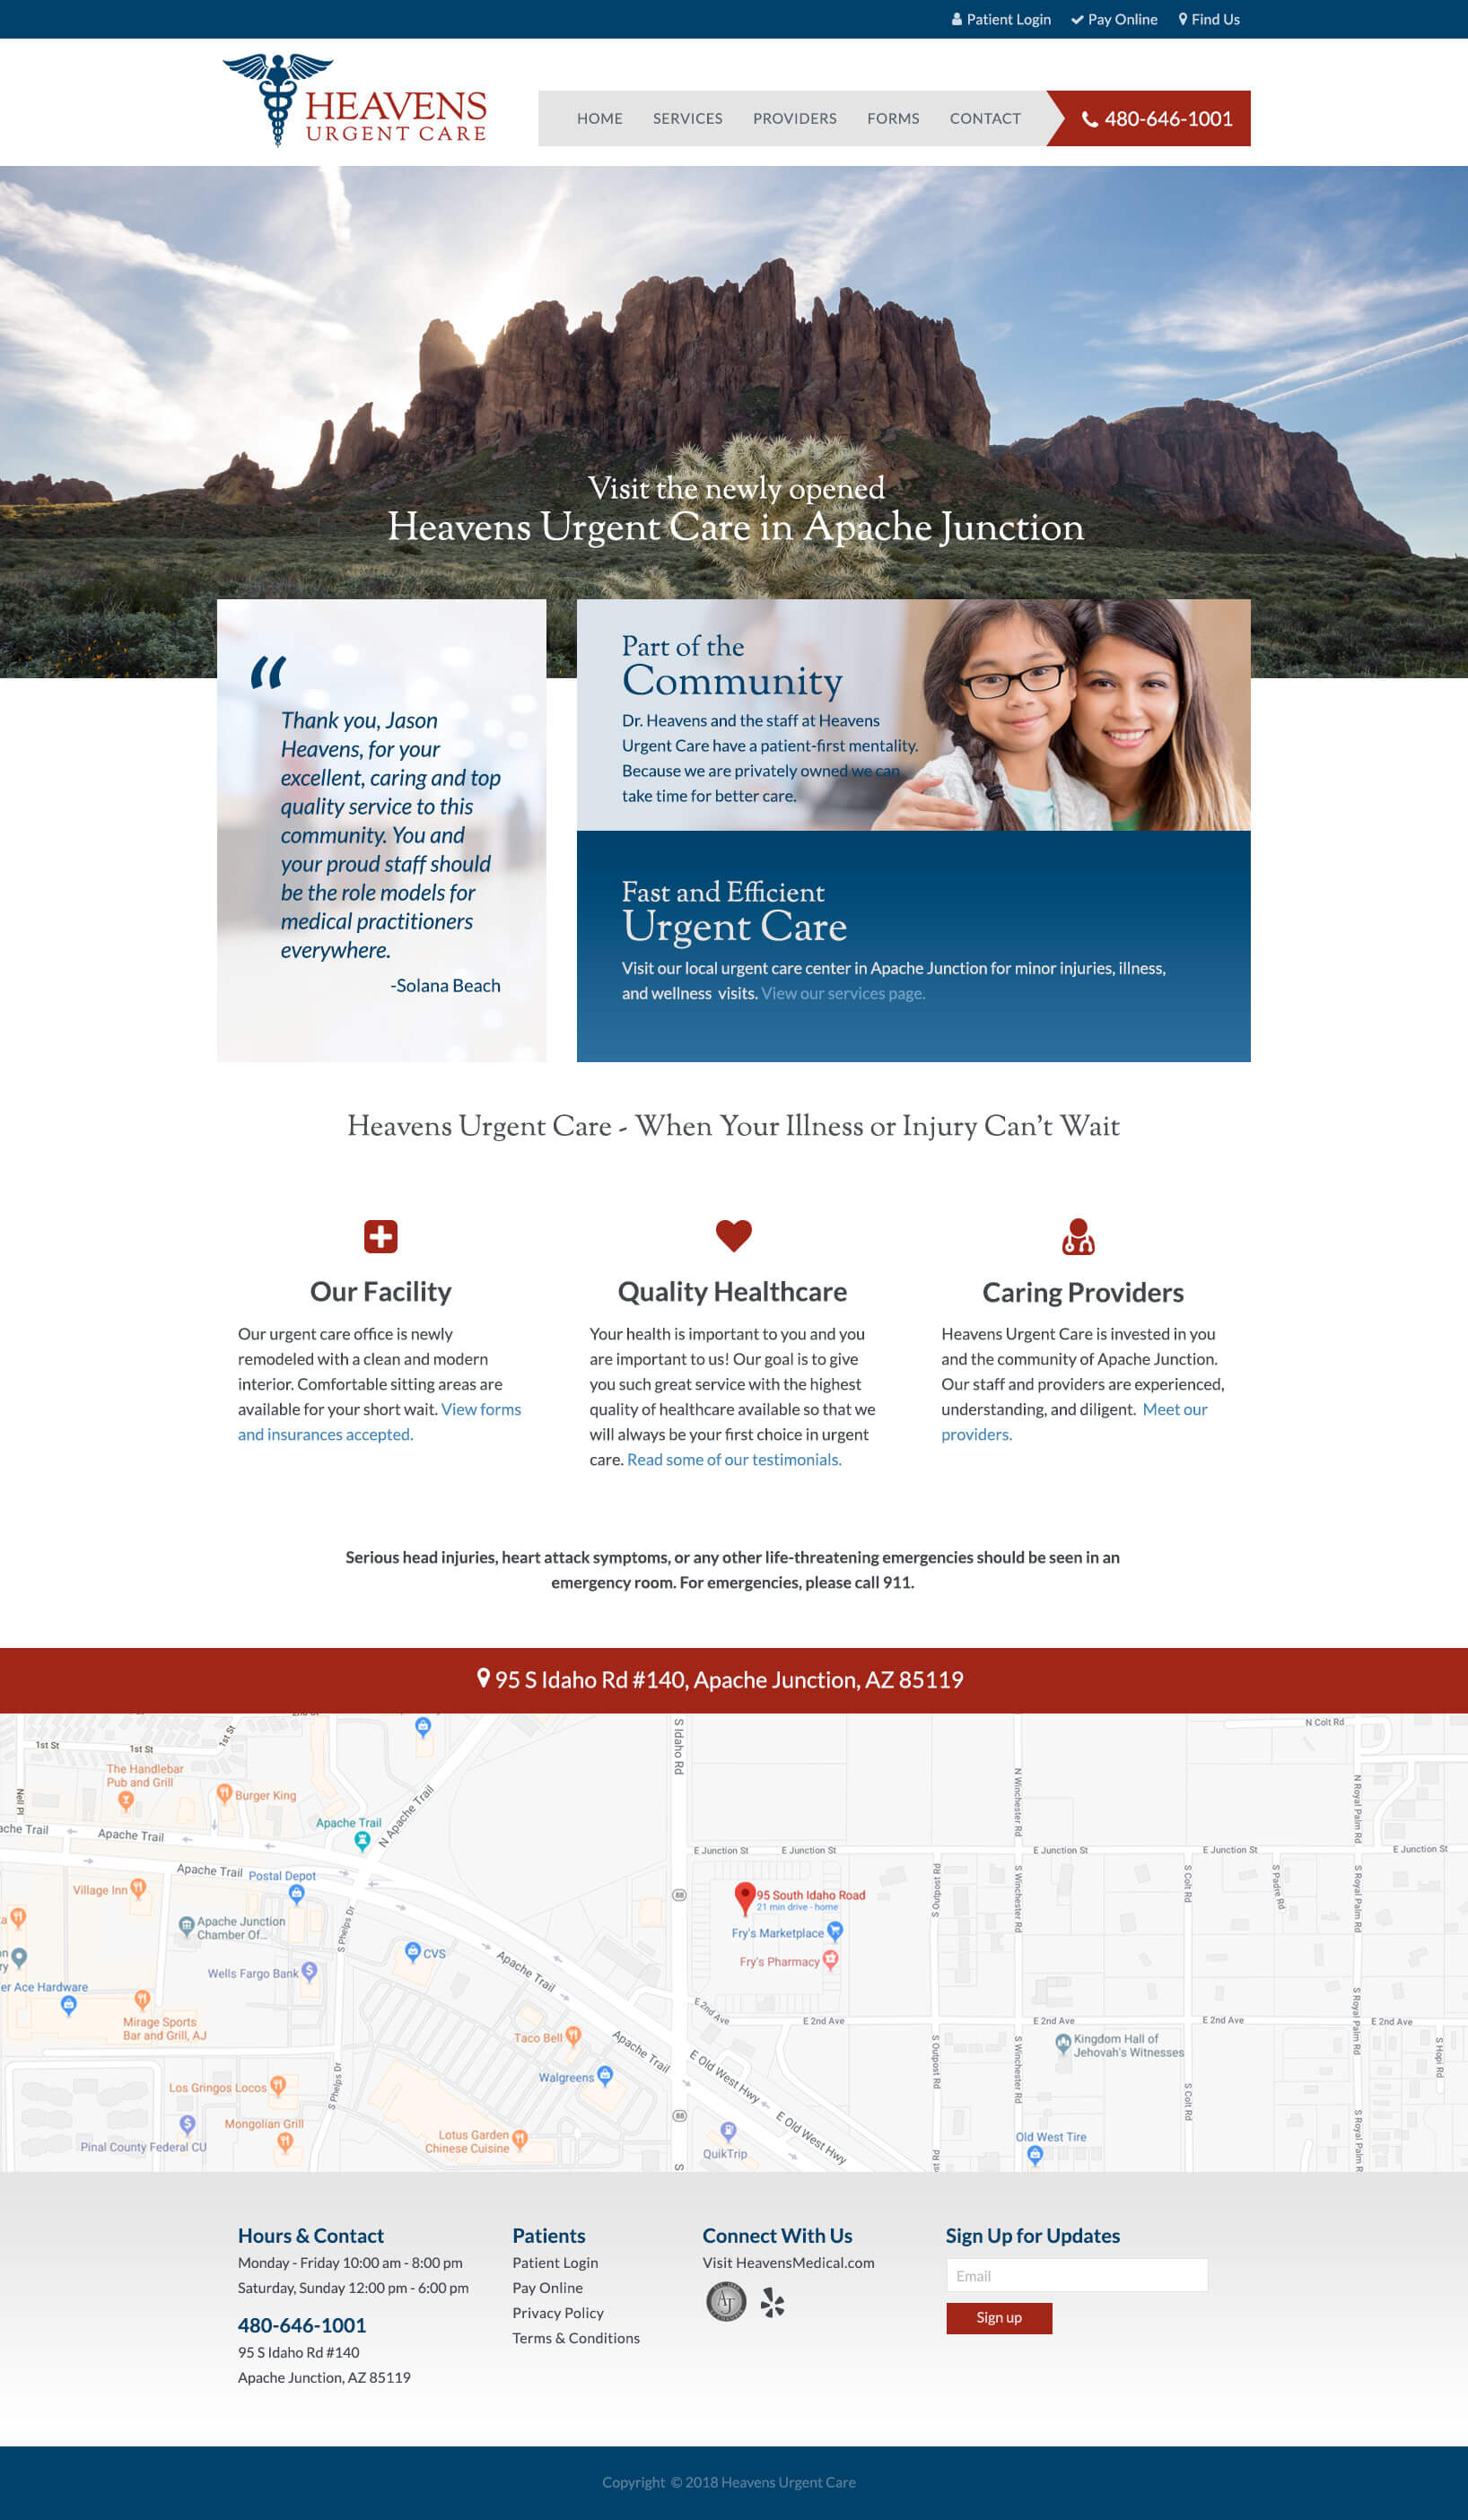 Heavens Urgent Care website mockup